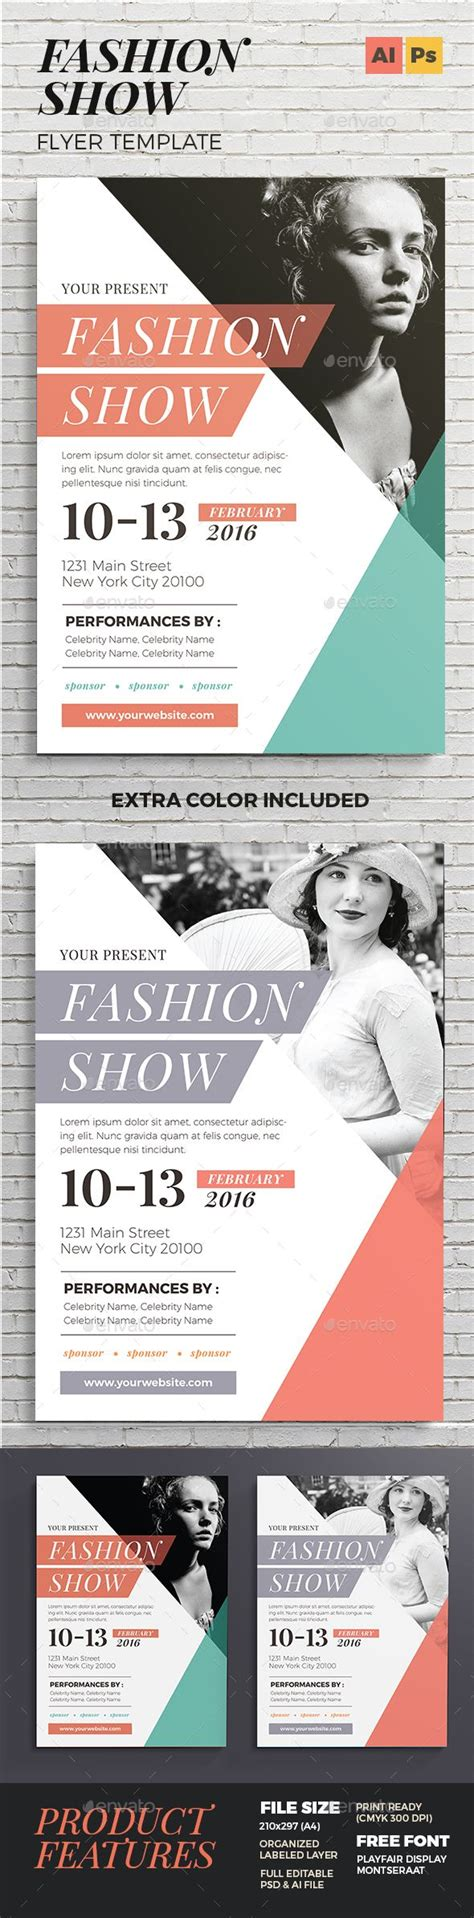 Fashion Show Flyer Design Grafisk Design Och Skola Show Template